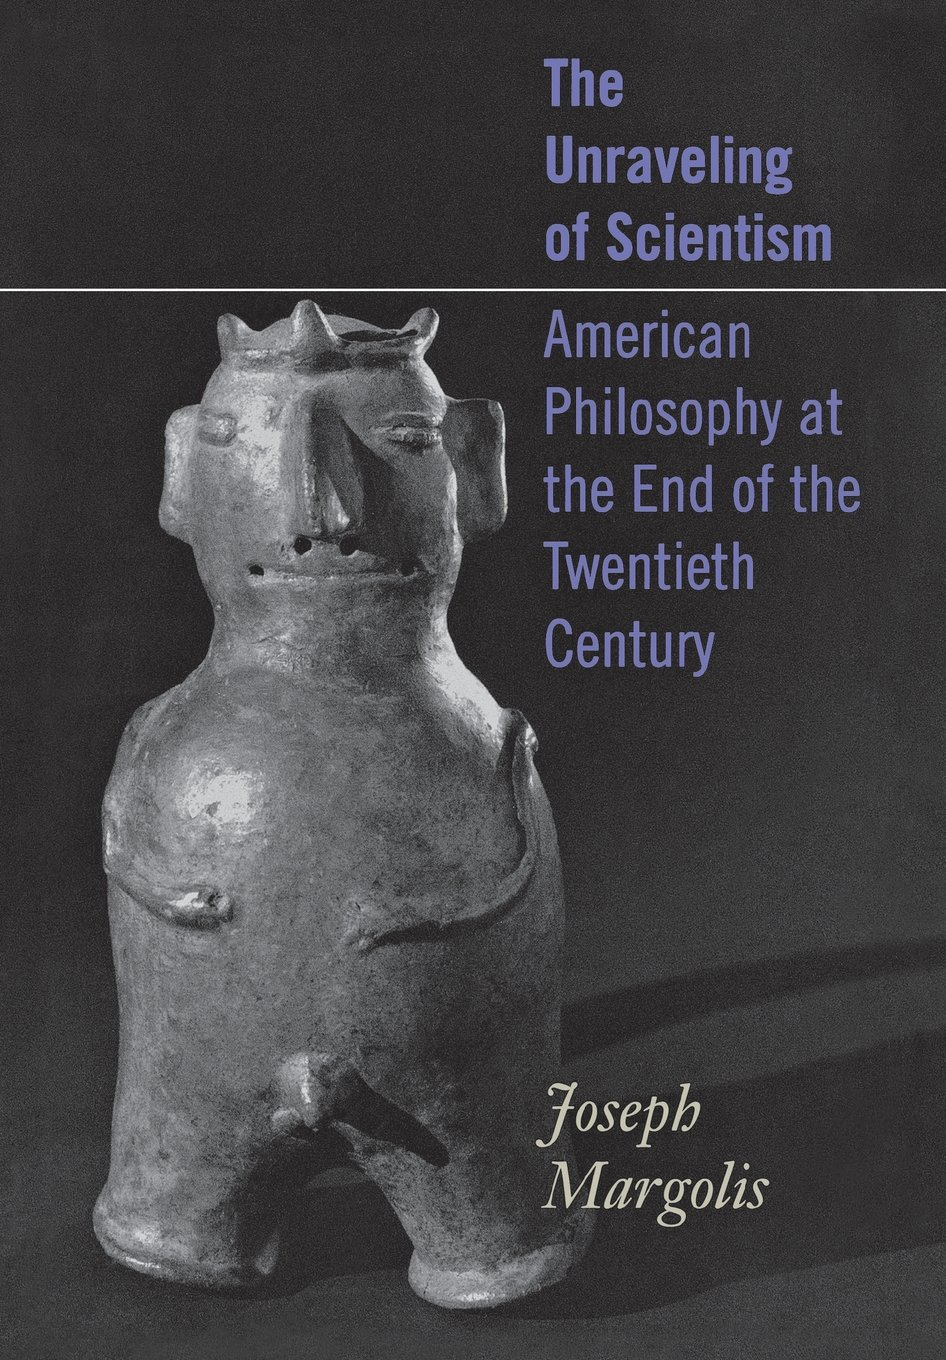 Download The Unraveling of Scientism: American Philosophy at the End of the Twentieth Century PDF